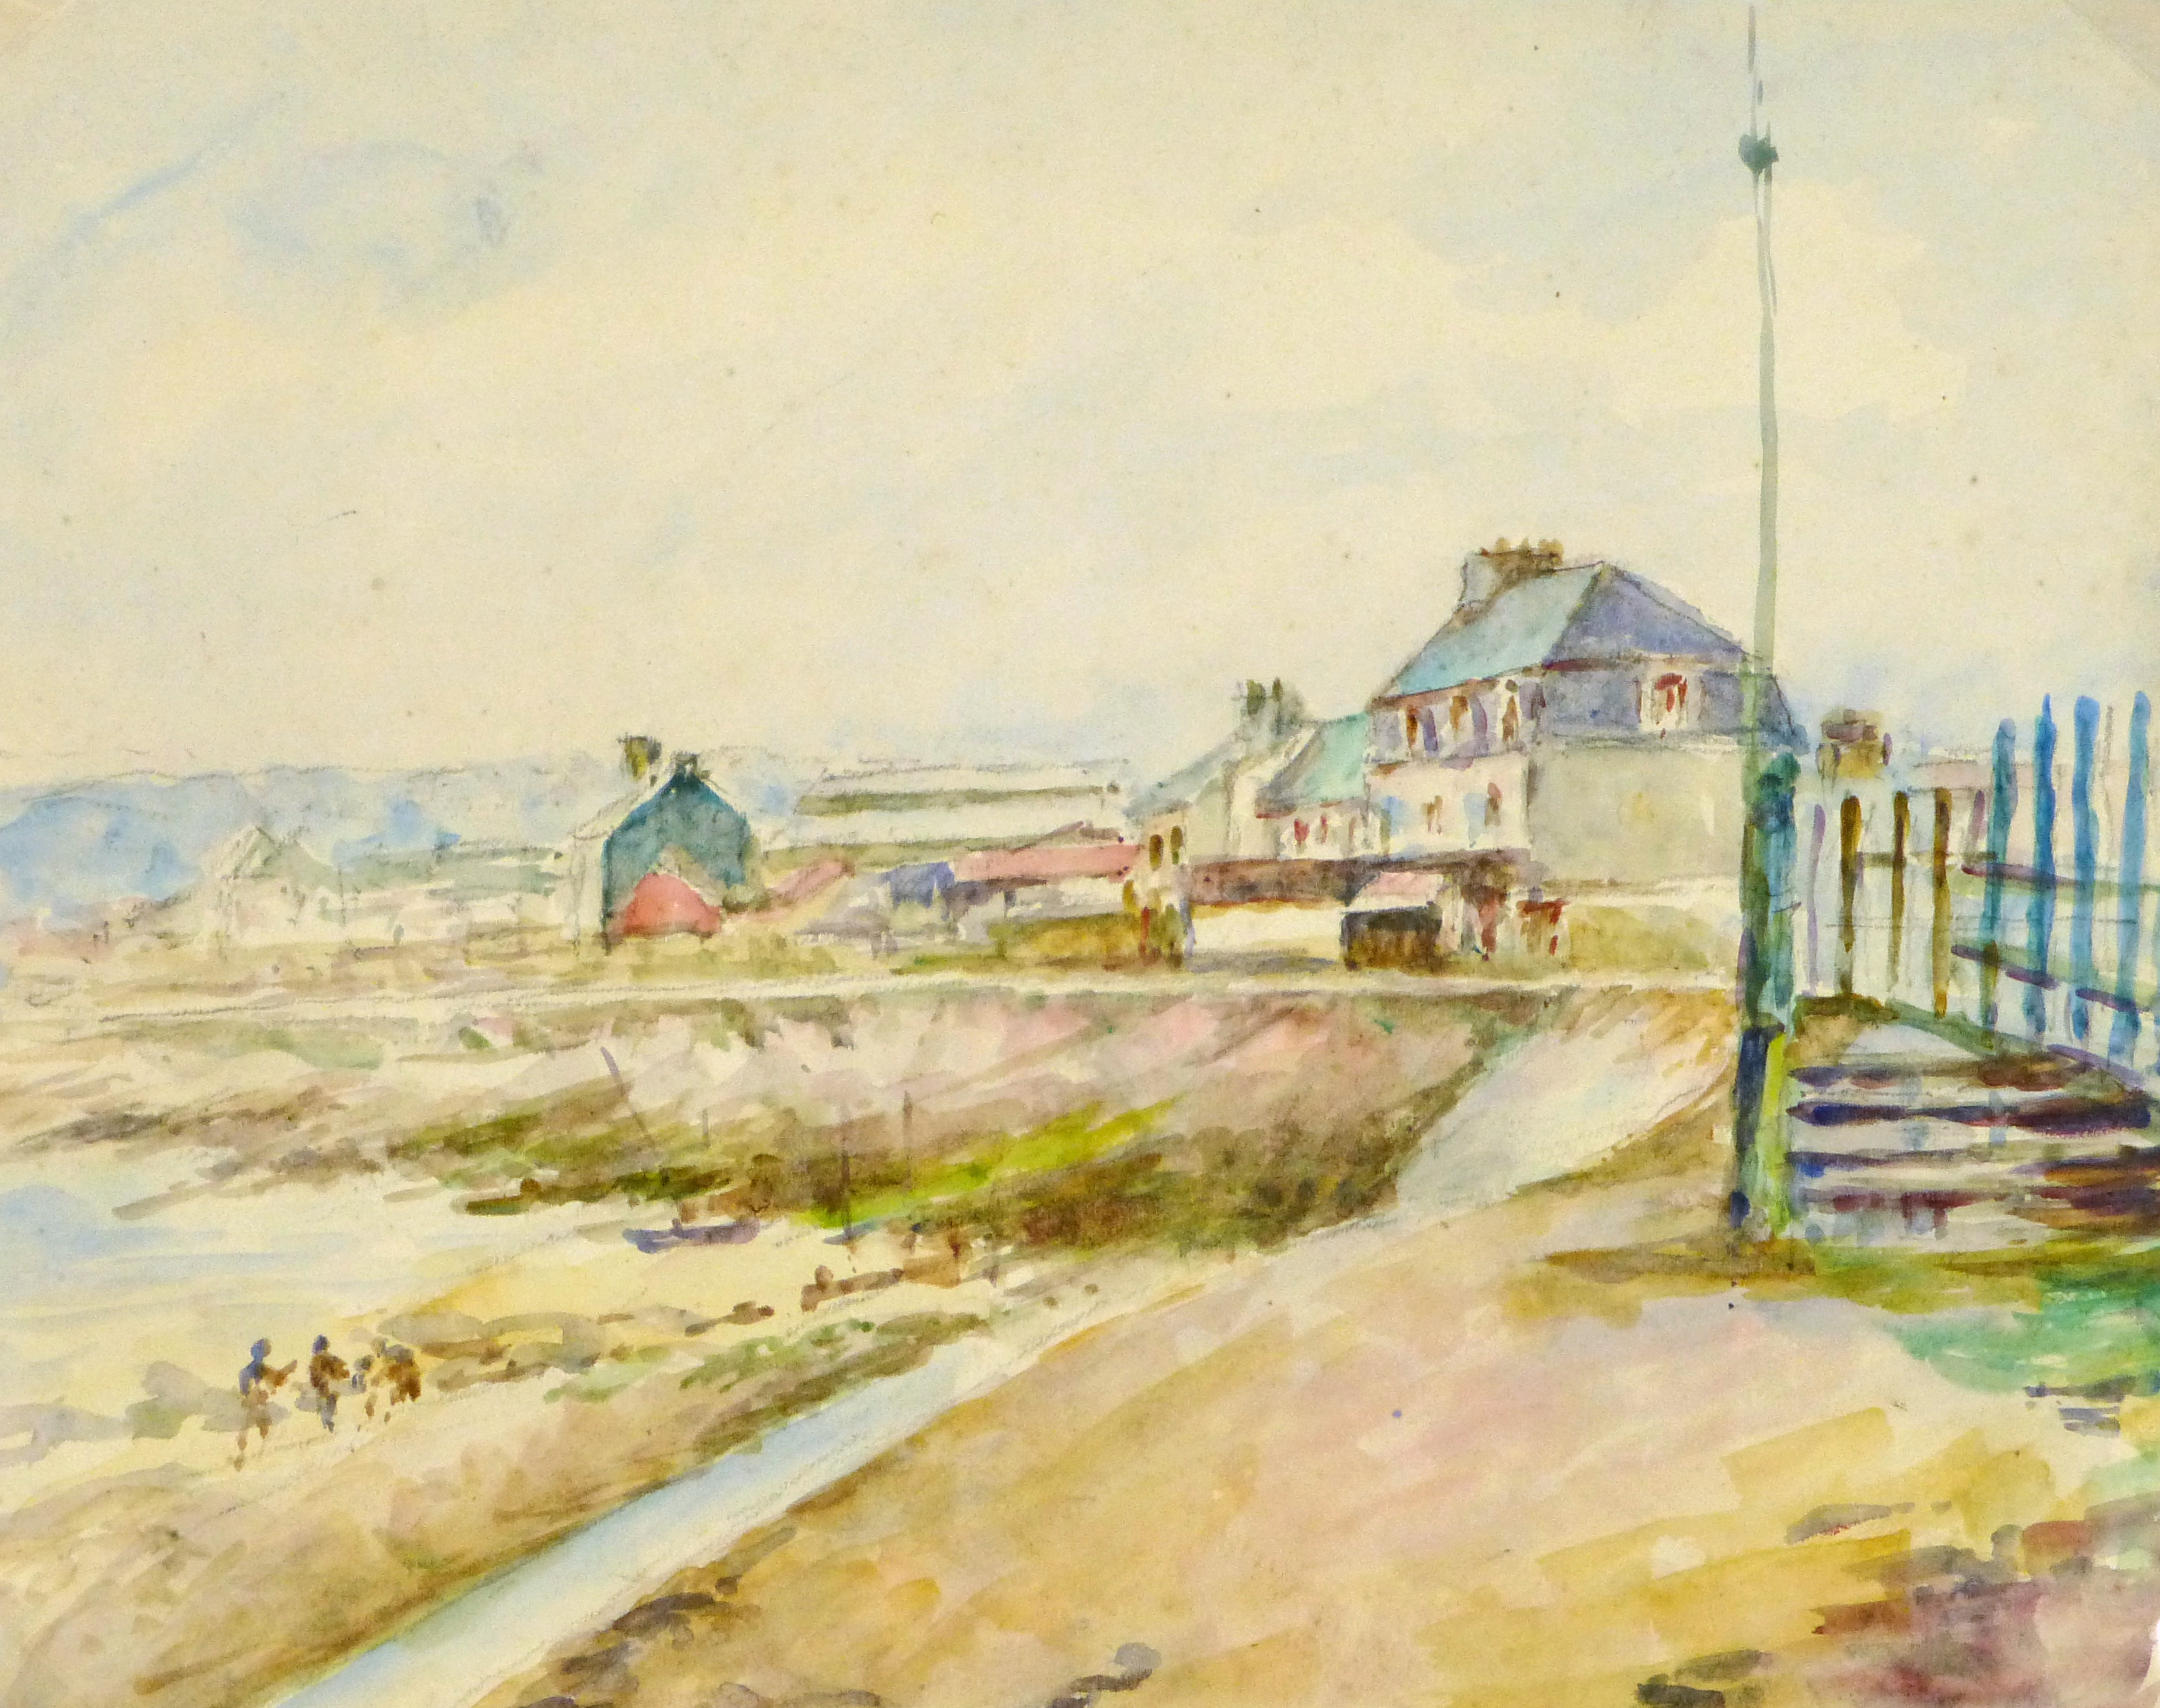 Watercolor Landscape - Beachside Town, Circa 1930-main-8894K